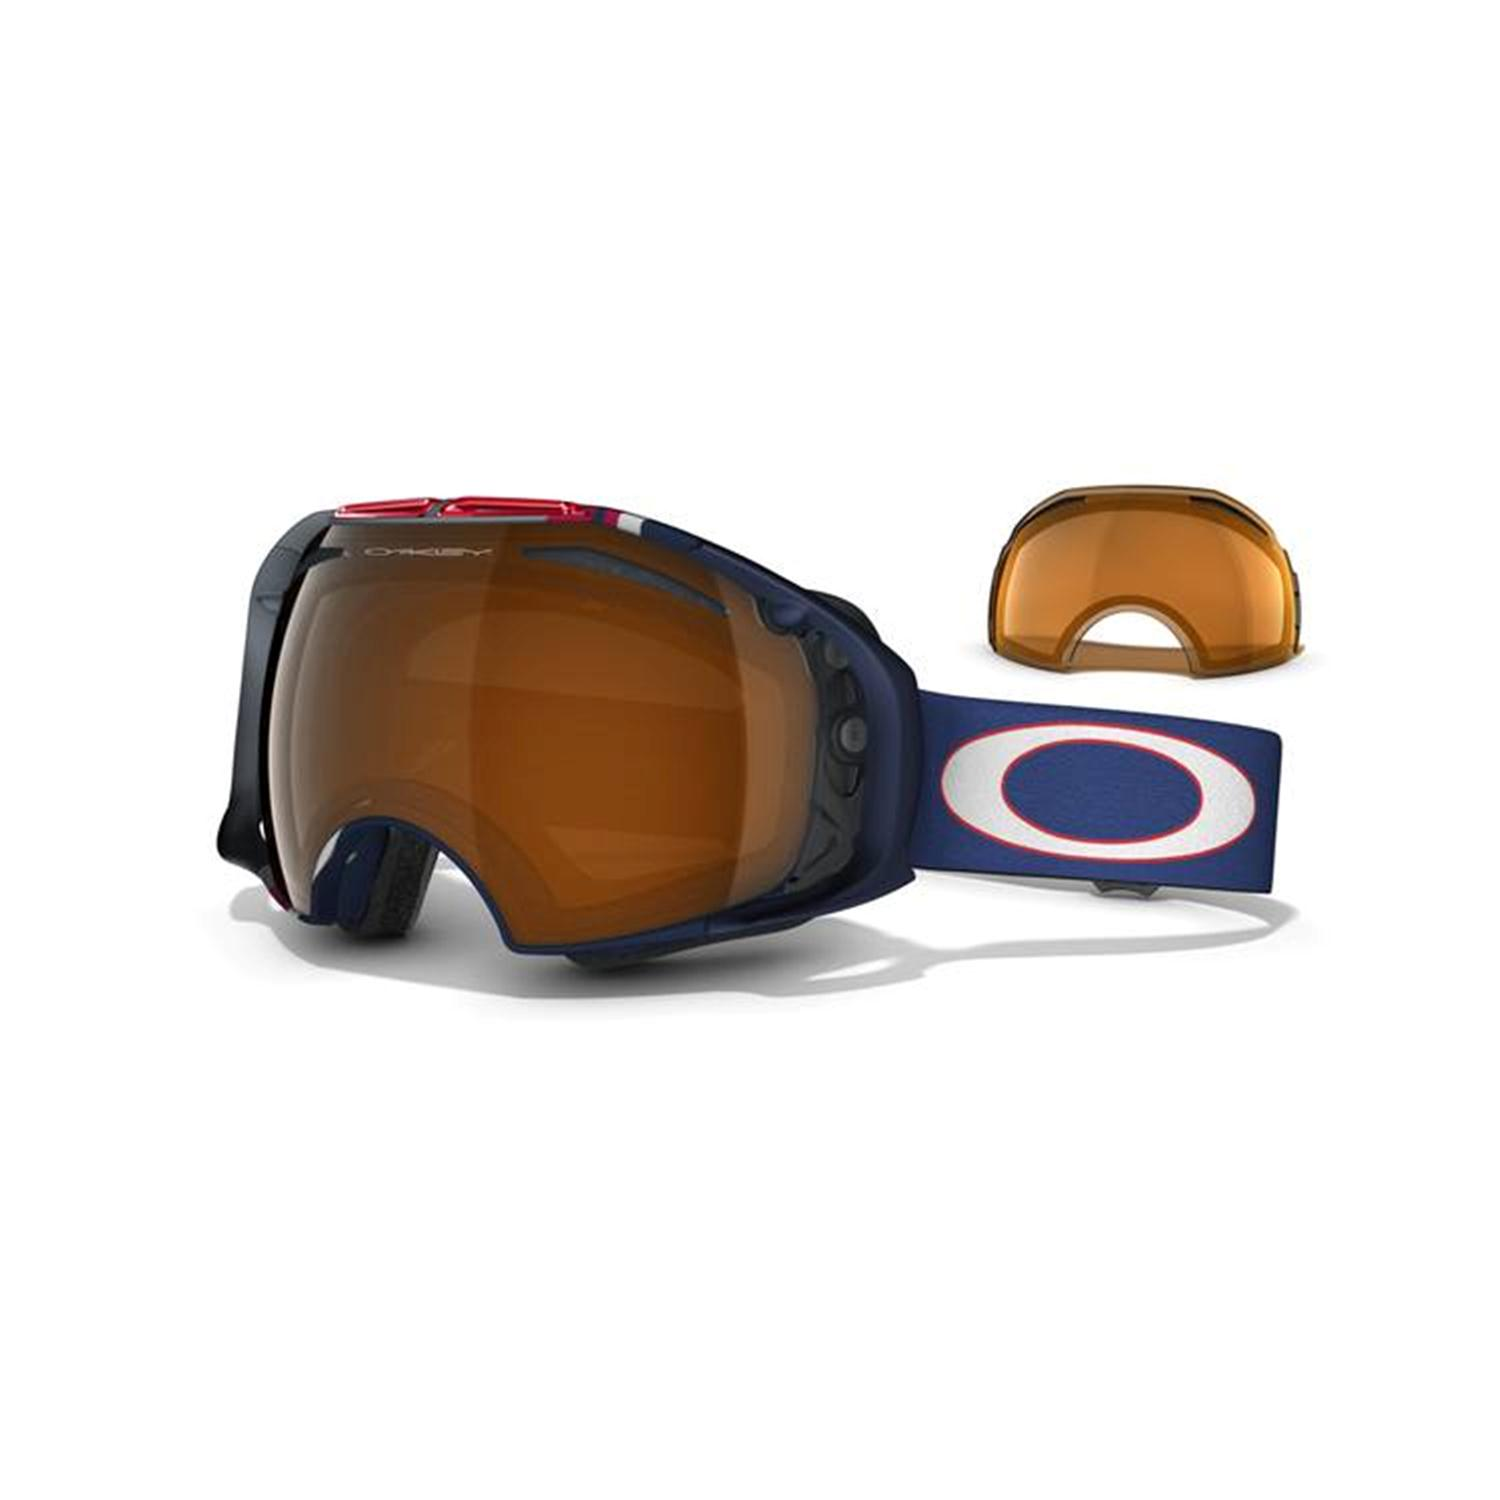 e13dc634619b Oakley Ski Goggles Reviews « Heritage Malta